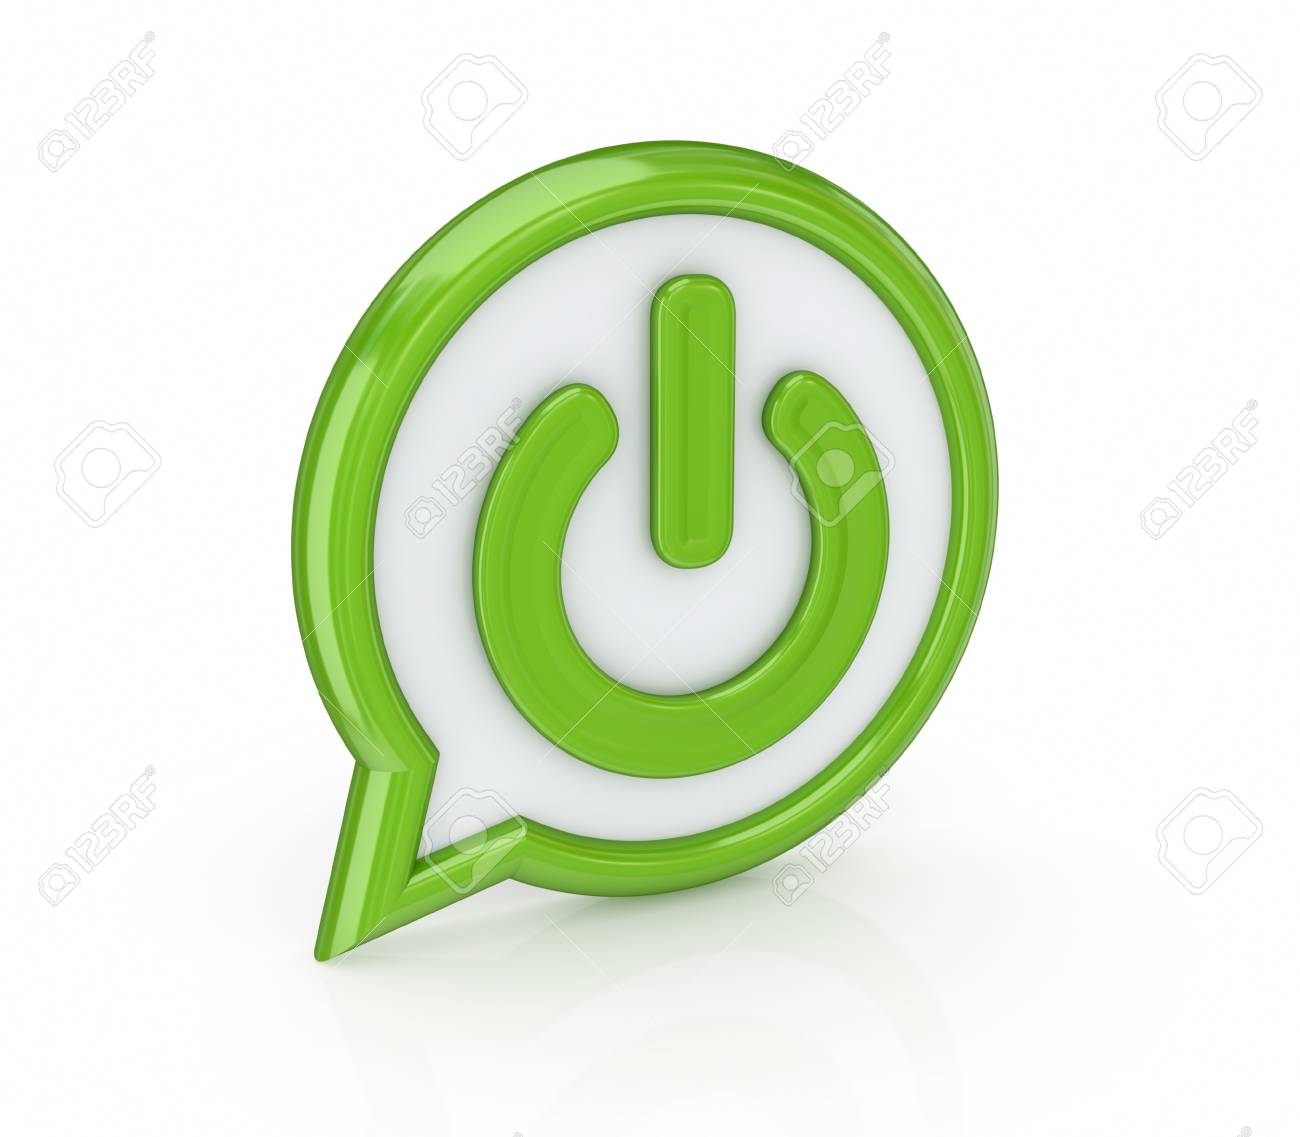 Power button Stock Photo - 14072894